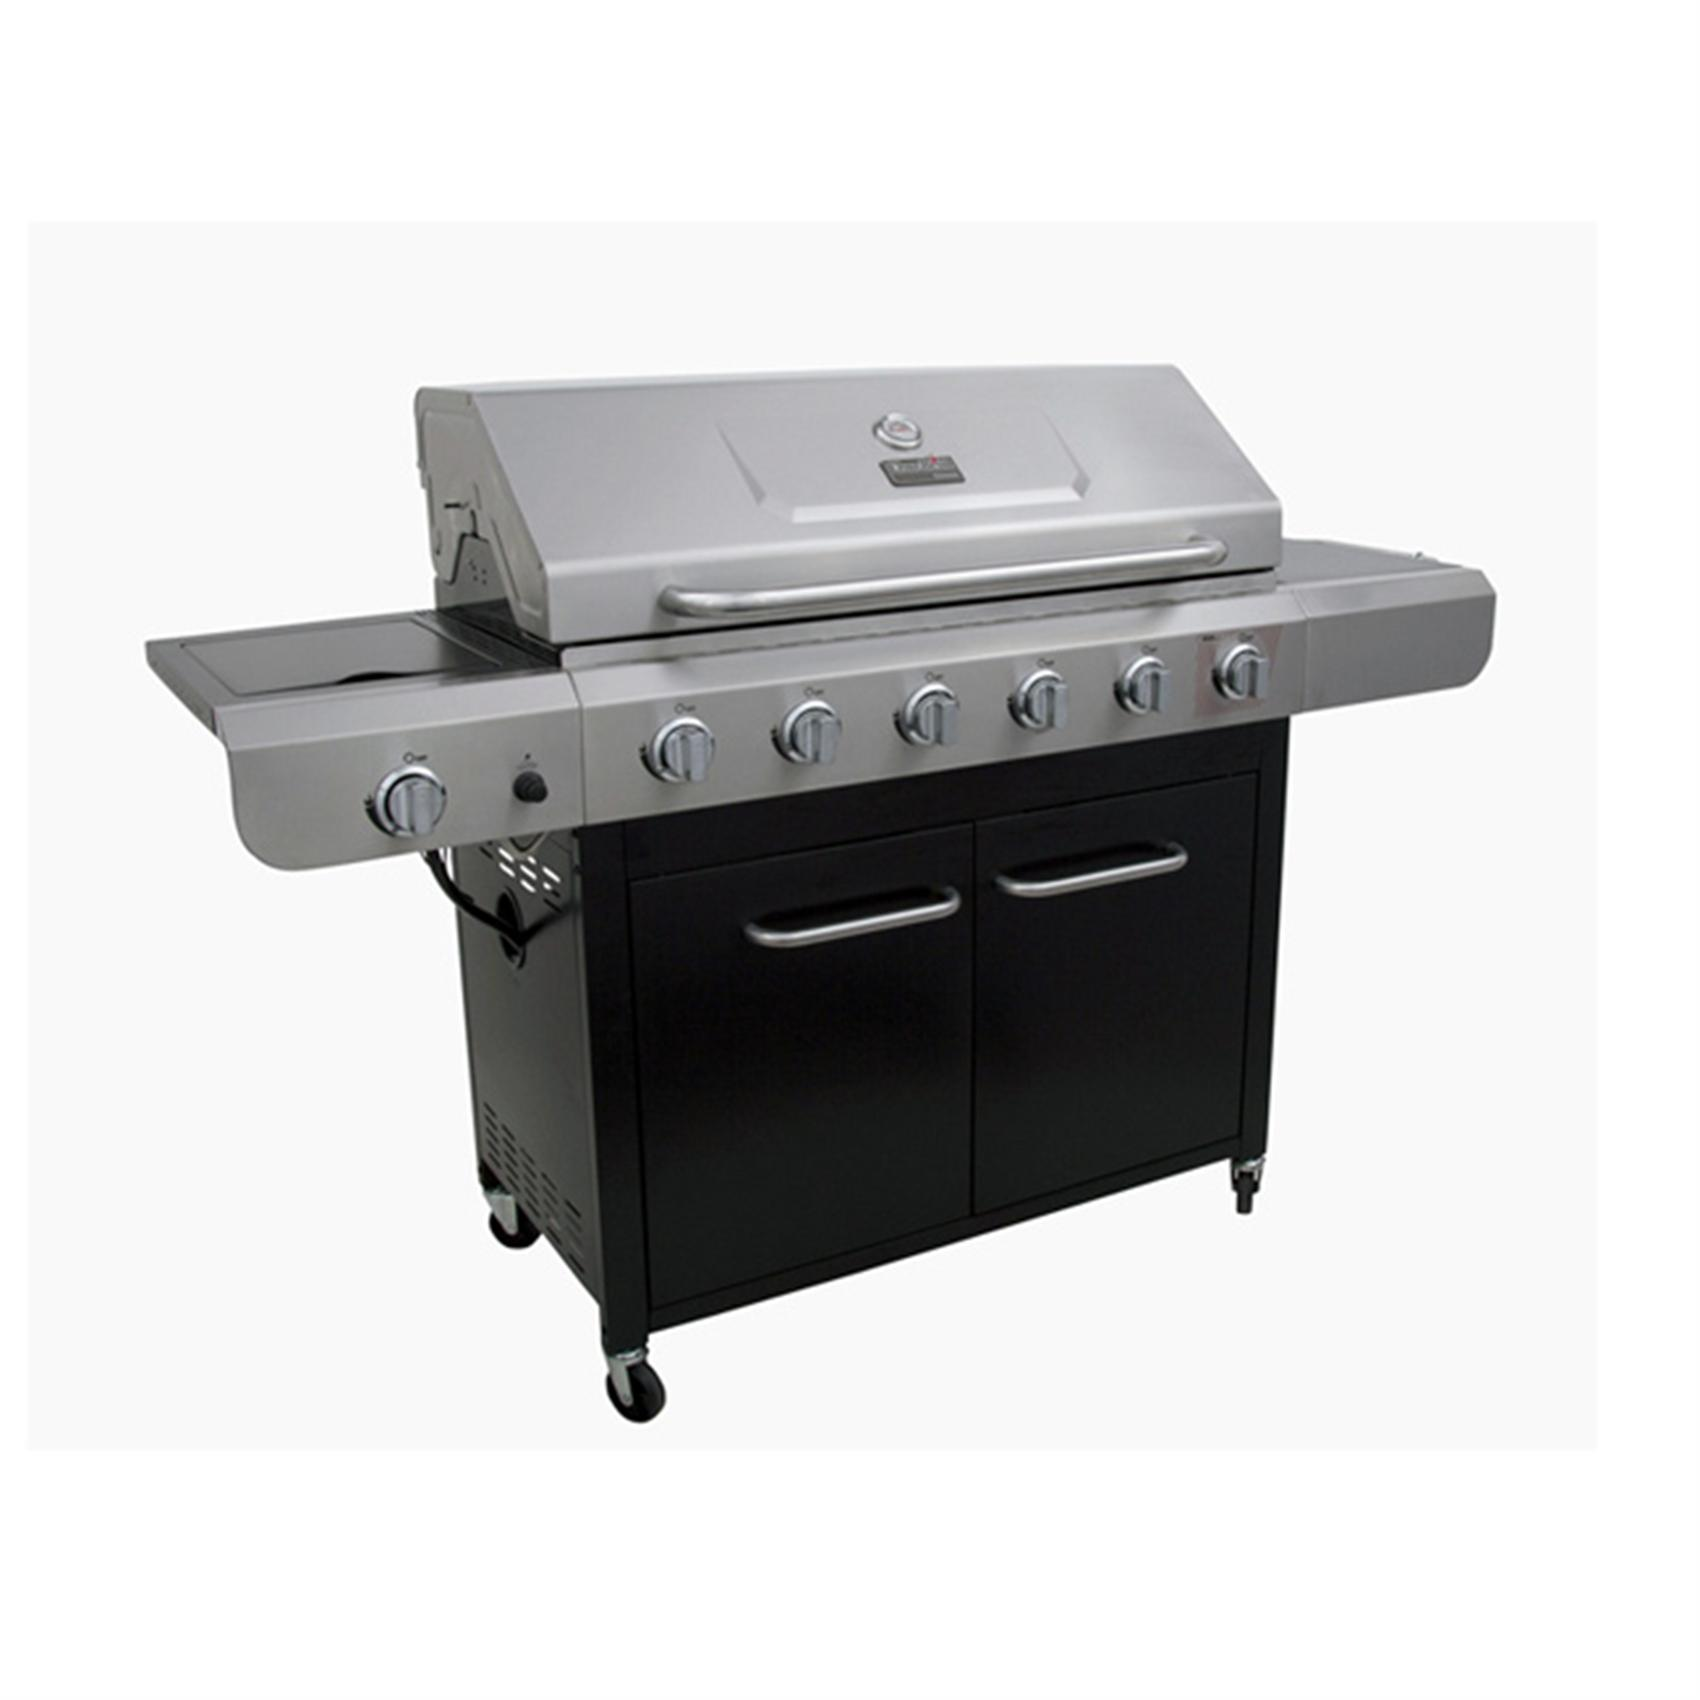 Help for Char-Broil Classic C-69G5 | Char-Broil Classic C ...